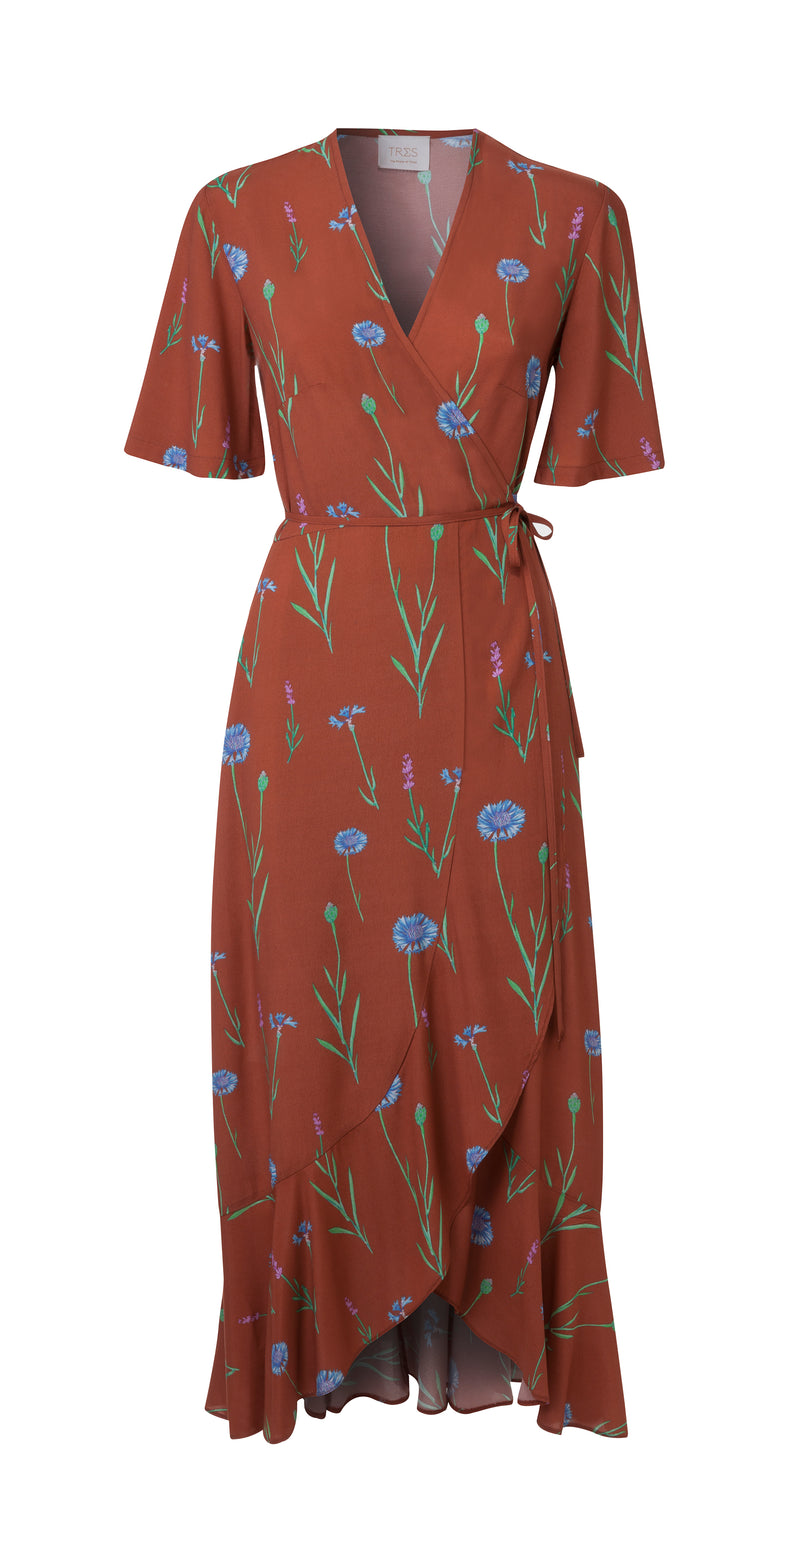 Ginger Garden Printed Eva Dress